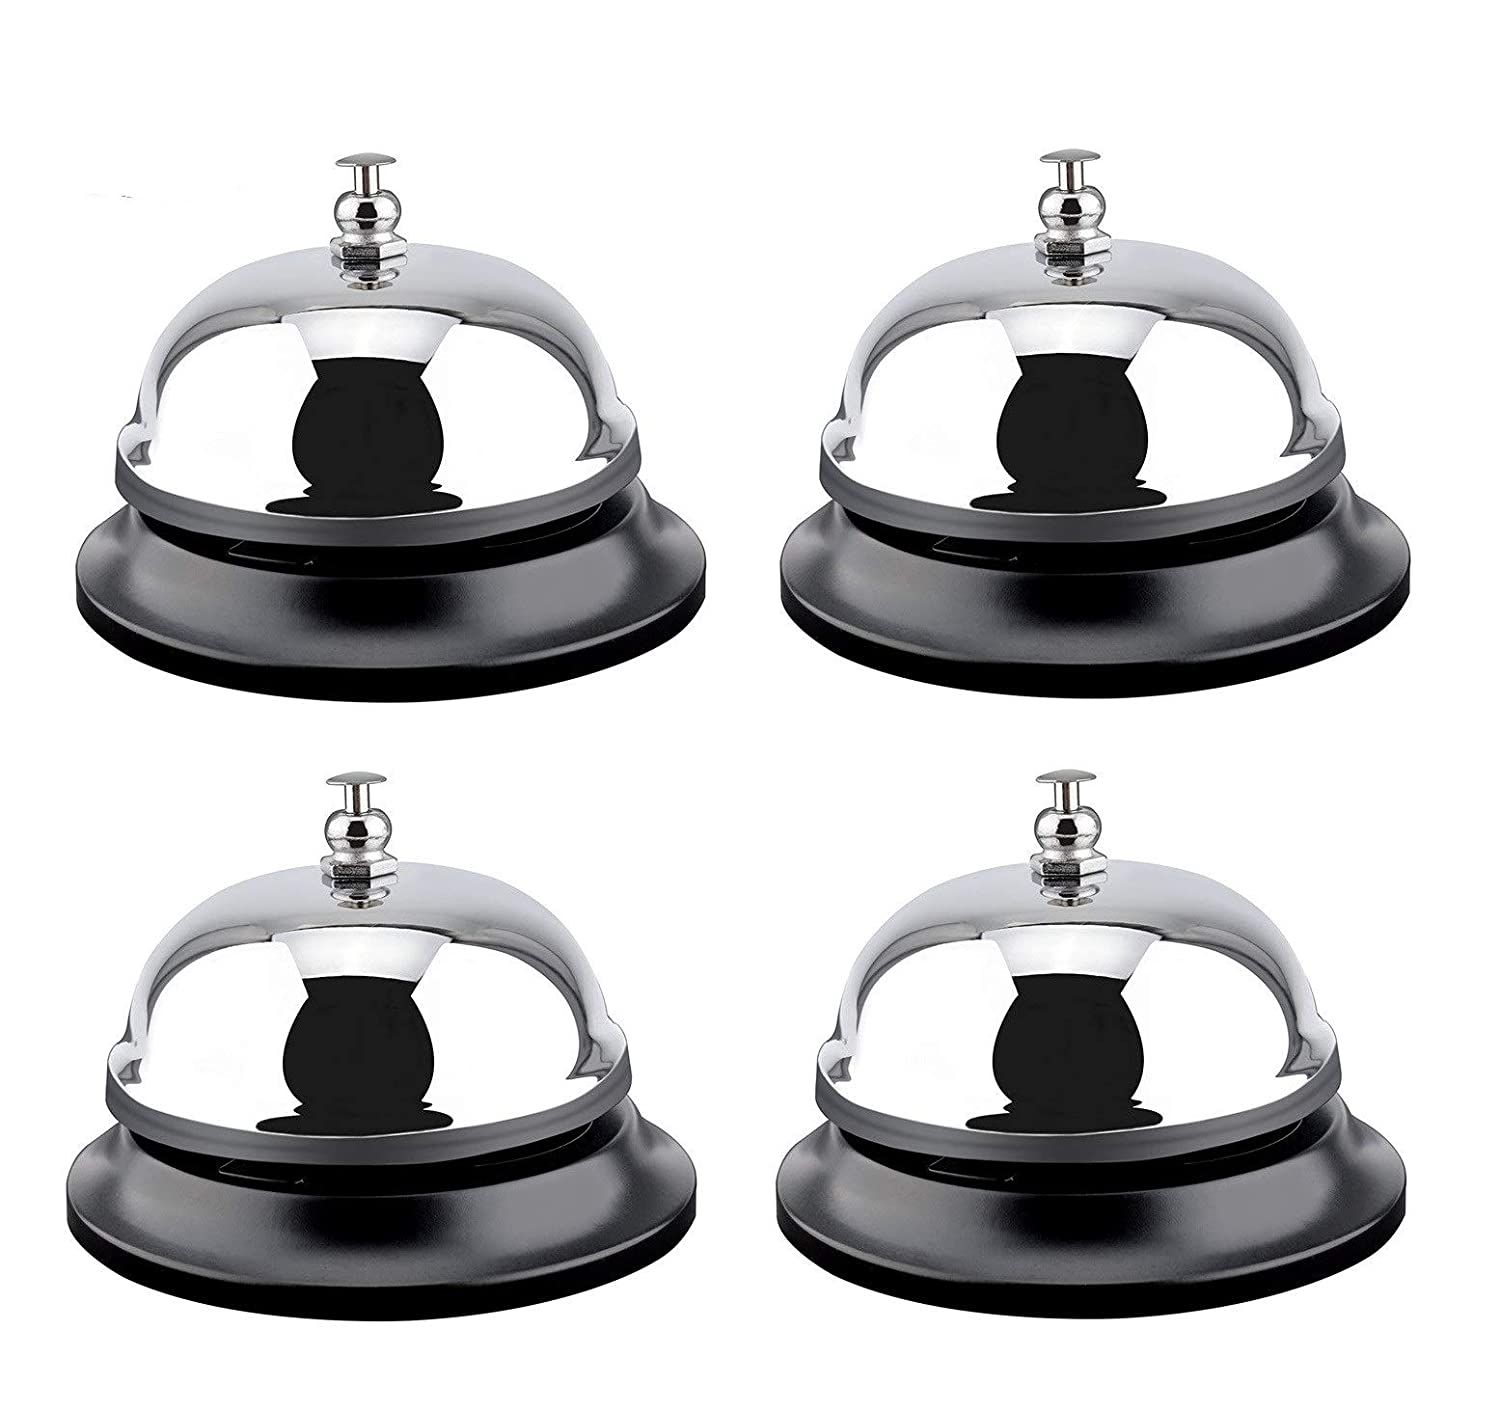 Desk Bell Service Bell for Hotels Reception Areas 4 Count Call Bells 3.3 inch Diameter All-Metal Construction Hospitals Restaurants Schools Chrome Finish Warehouses